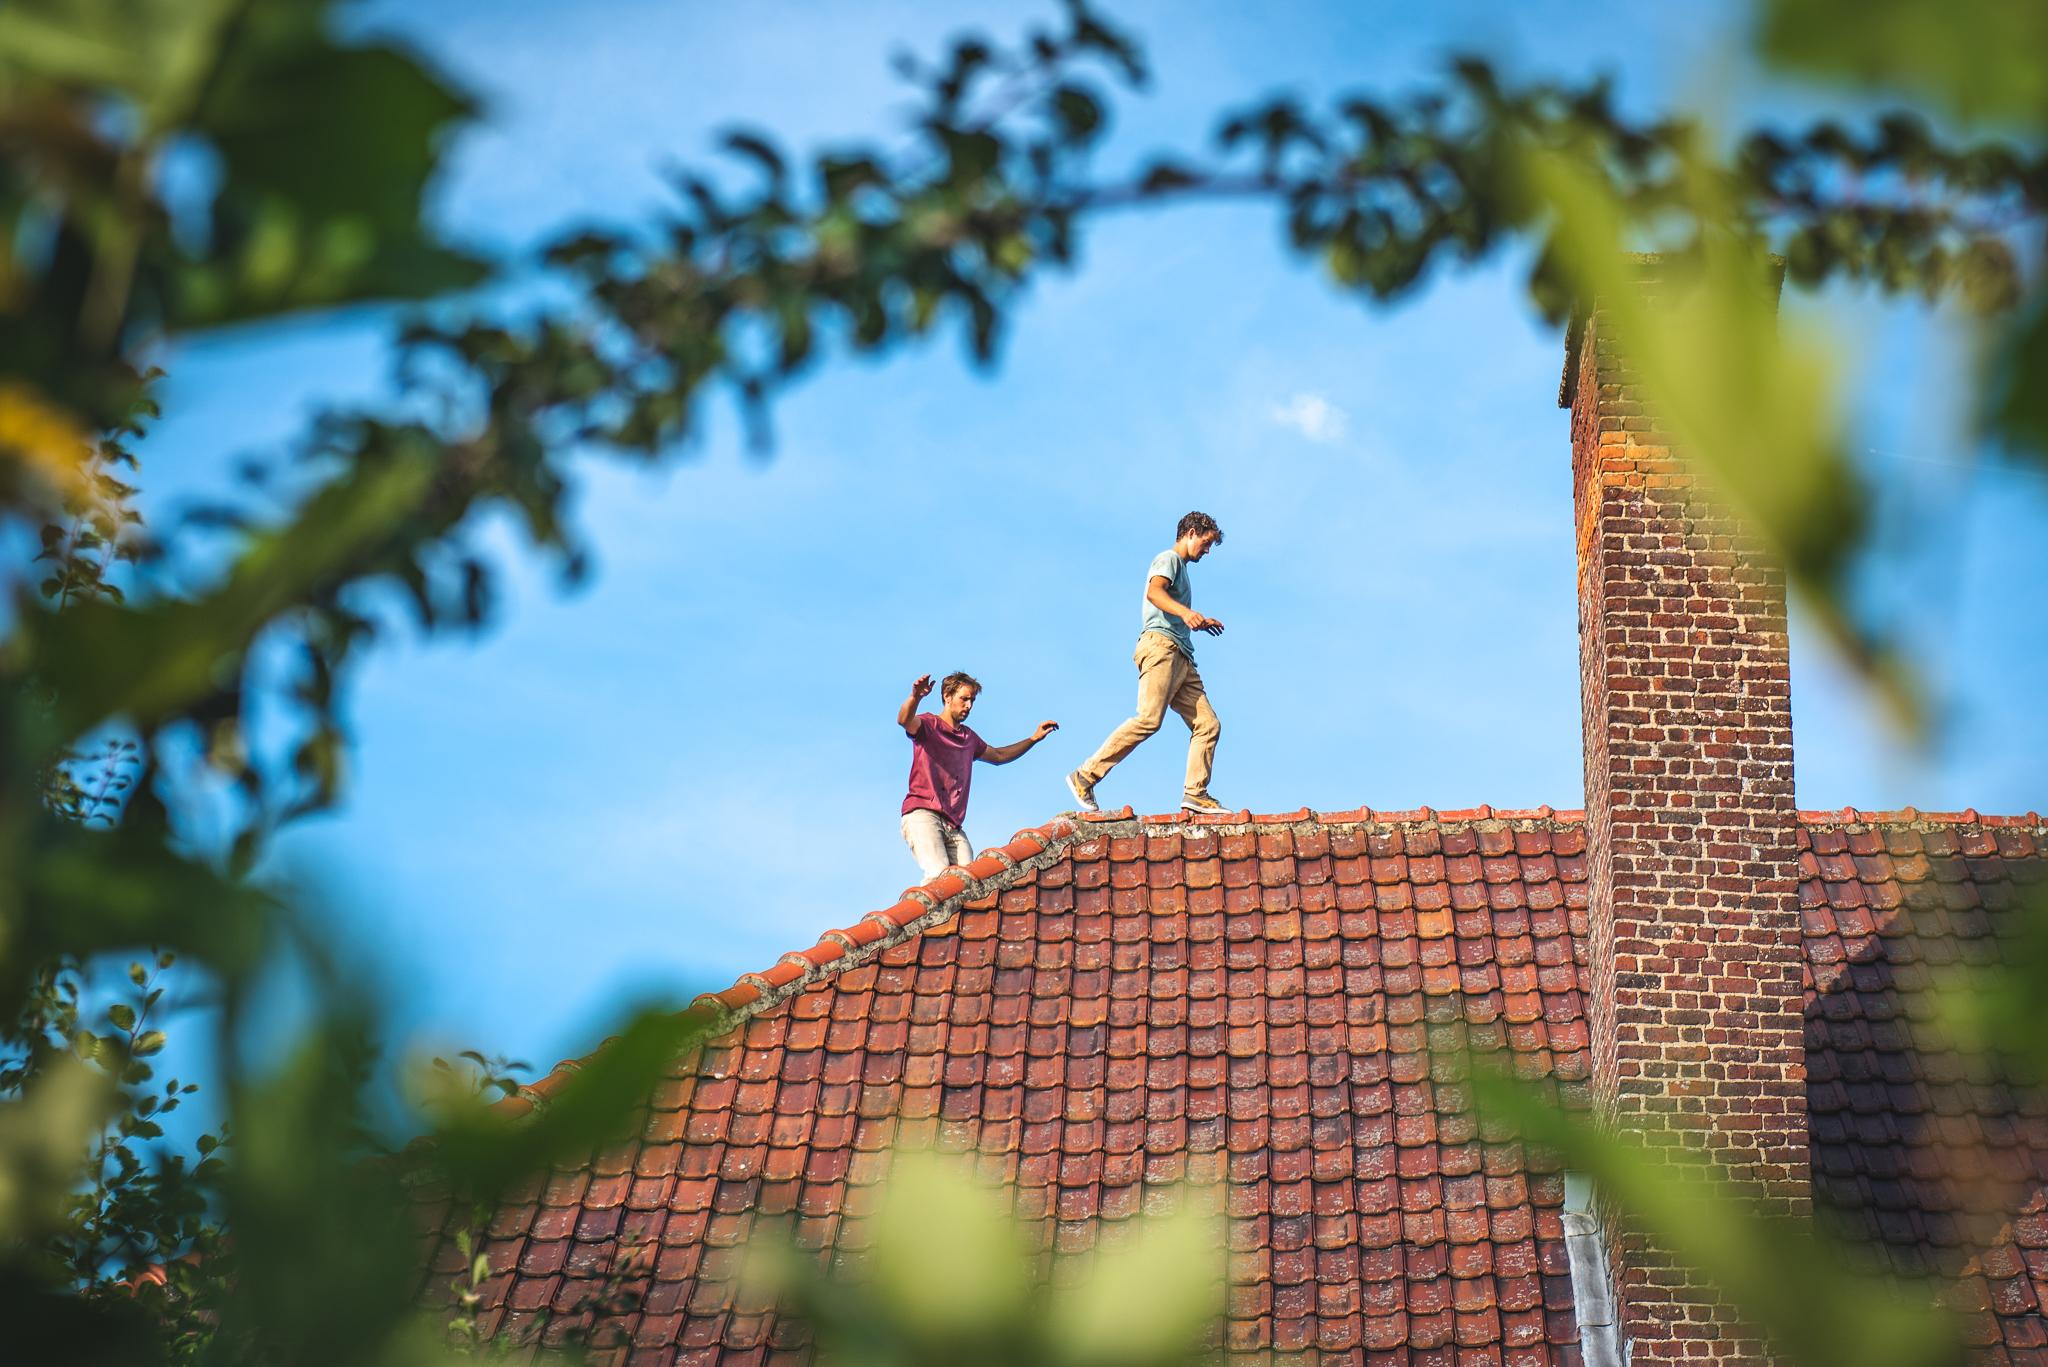 Two men walking on a rooftop made of red tiles.